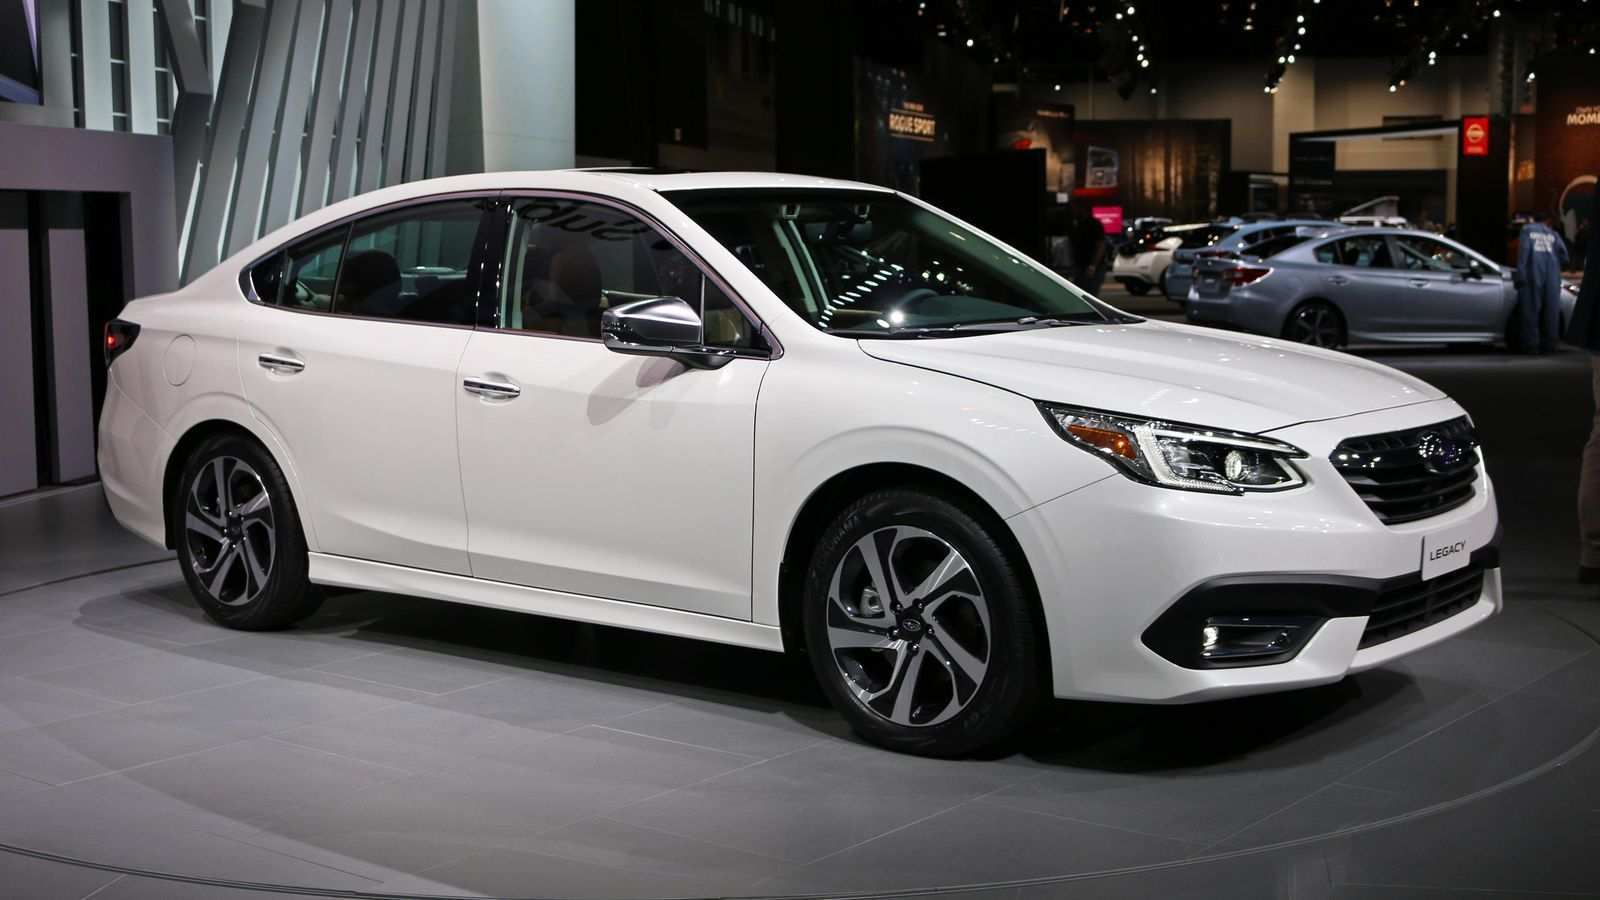 49 A 2020 Subaru Legacy Engine Redesign And Concept